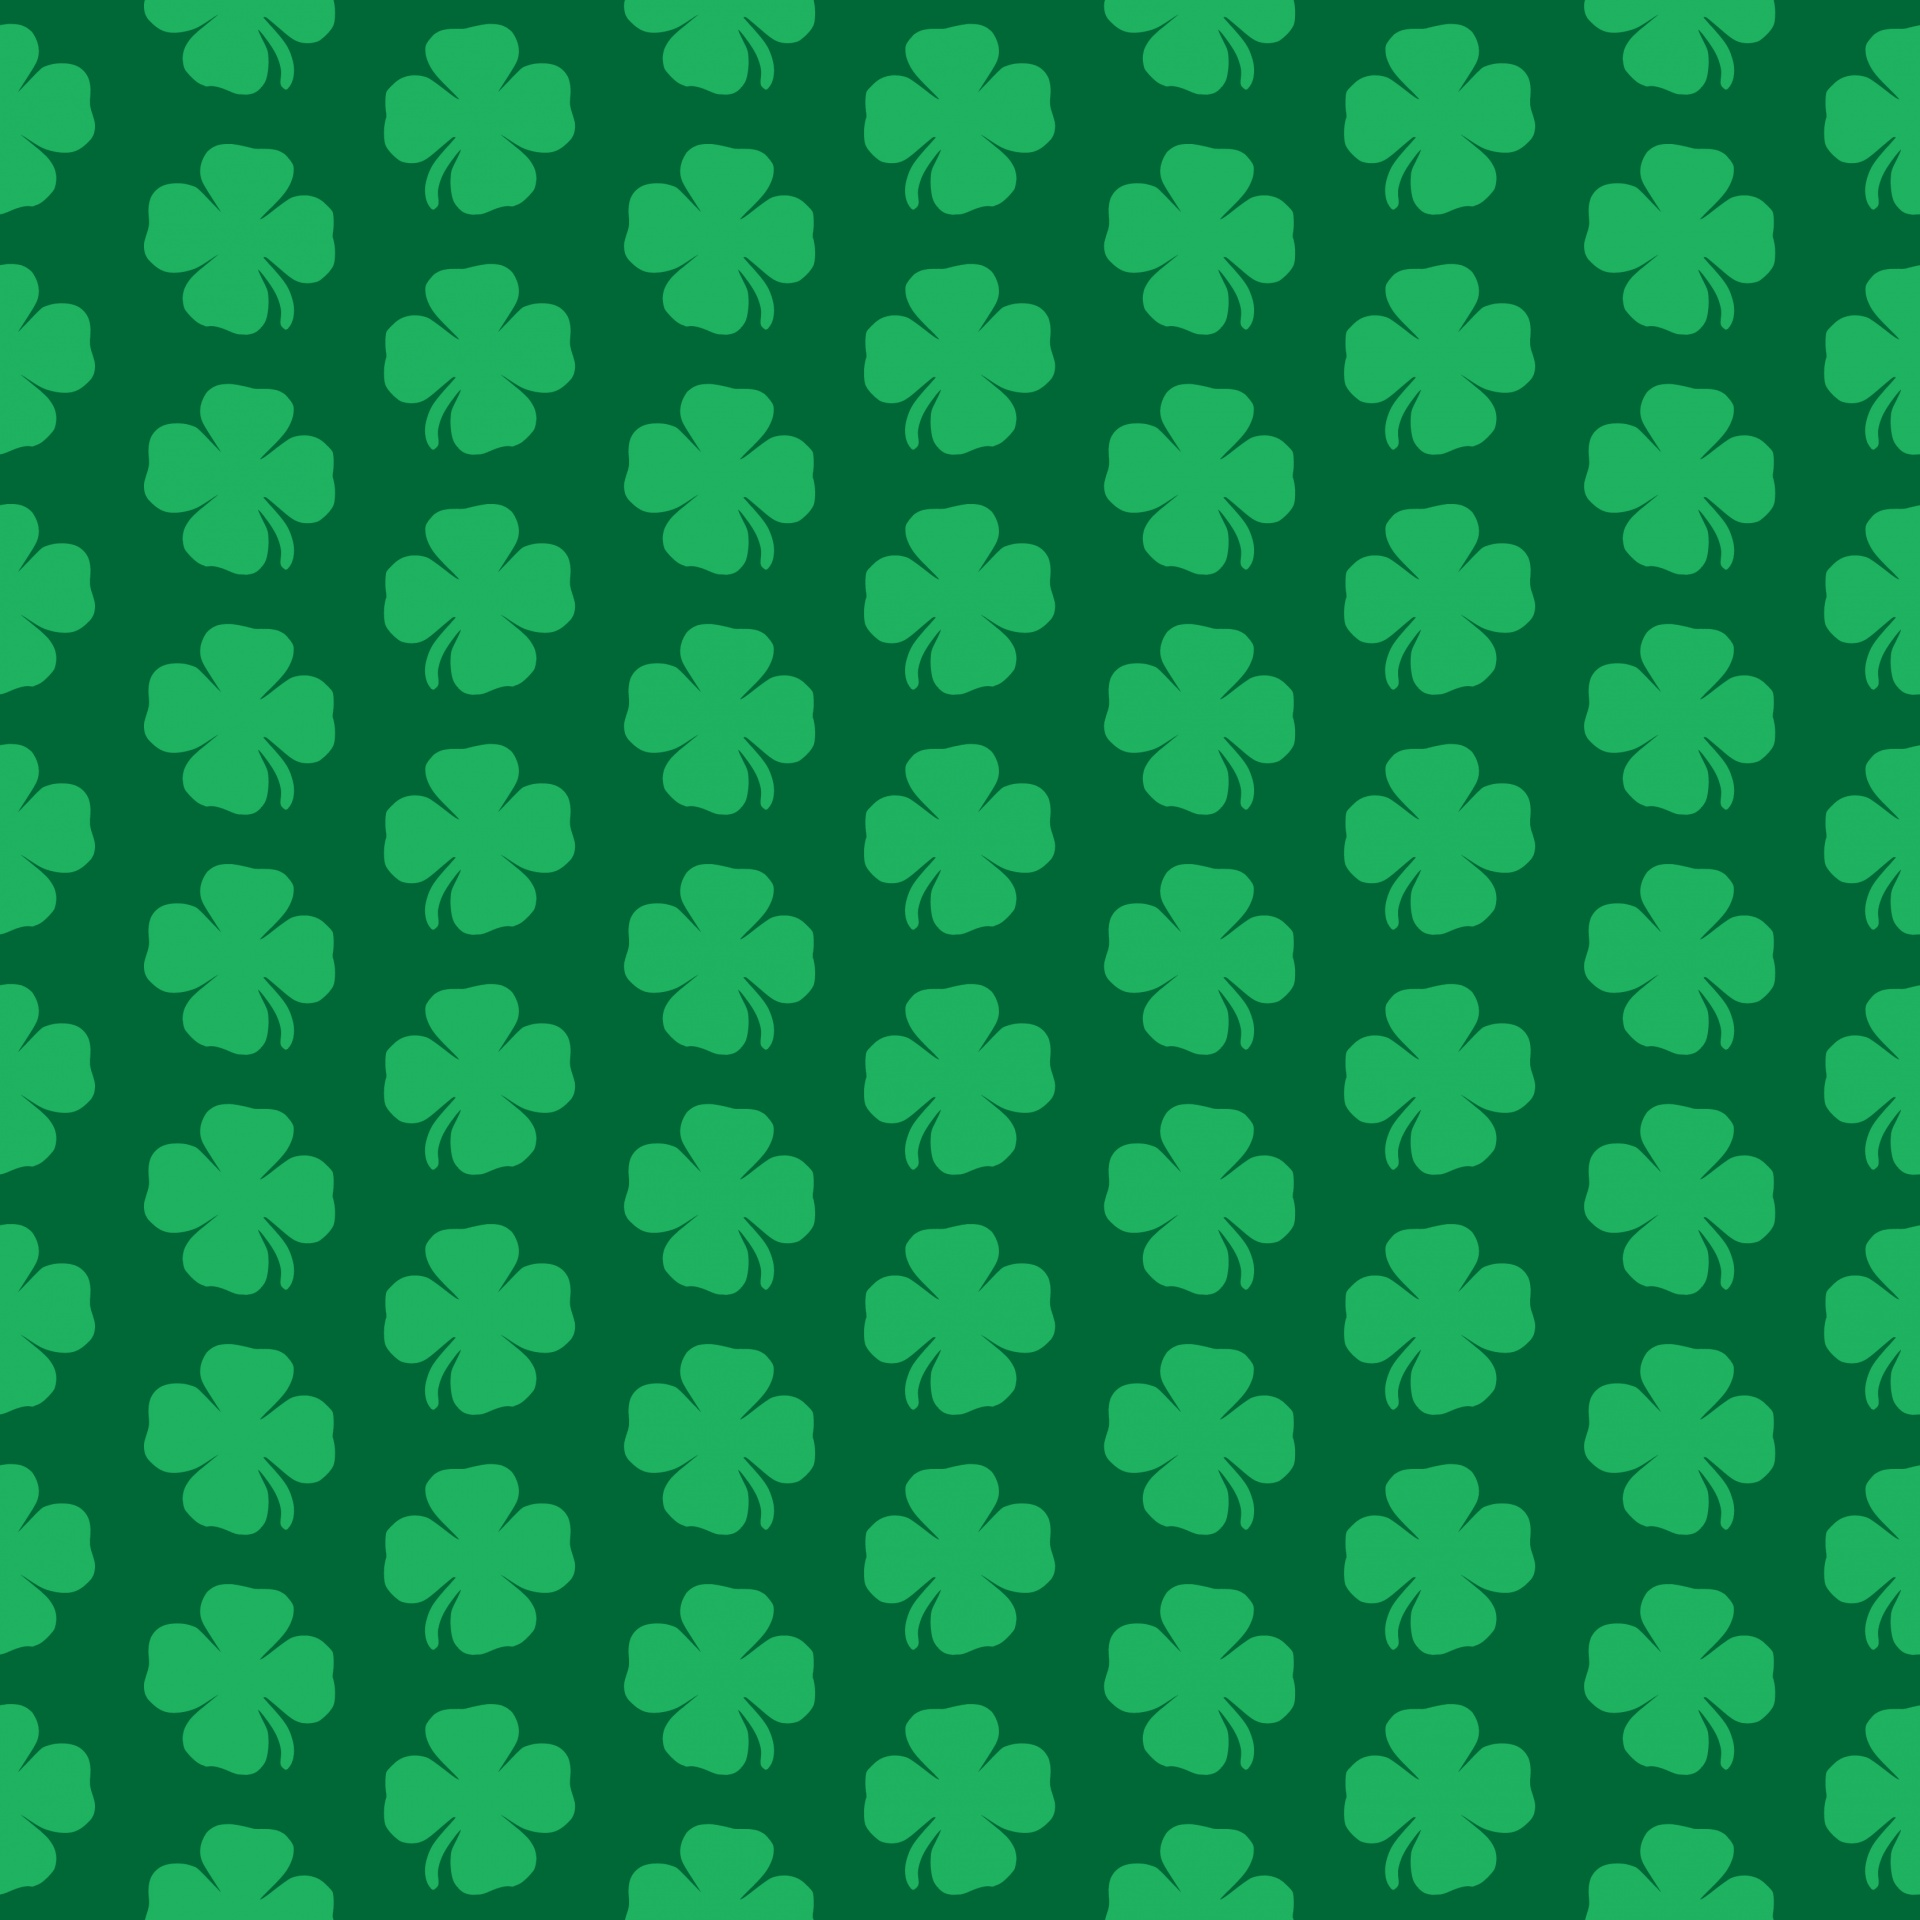 Download Free Photo Of Shamrocks Background St Patricks Day